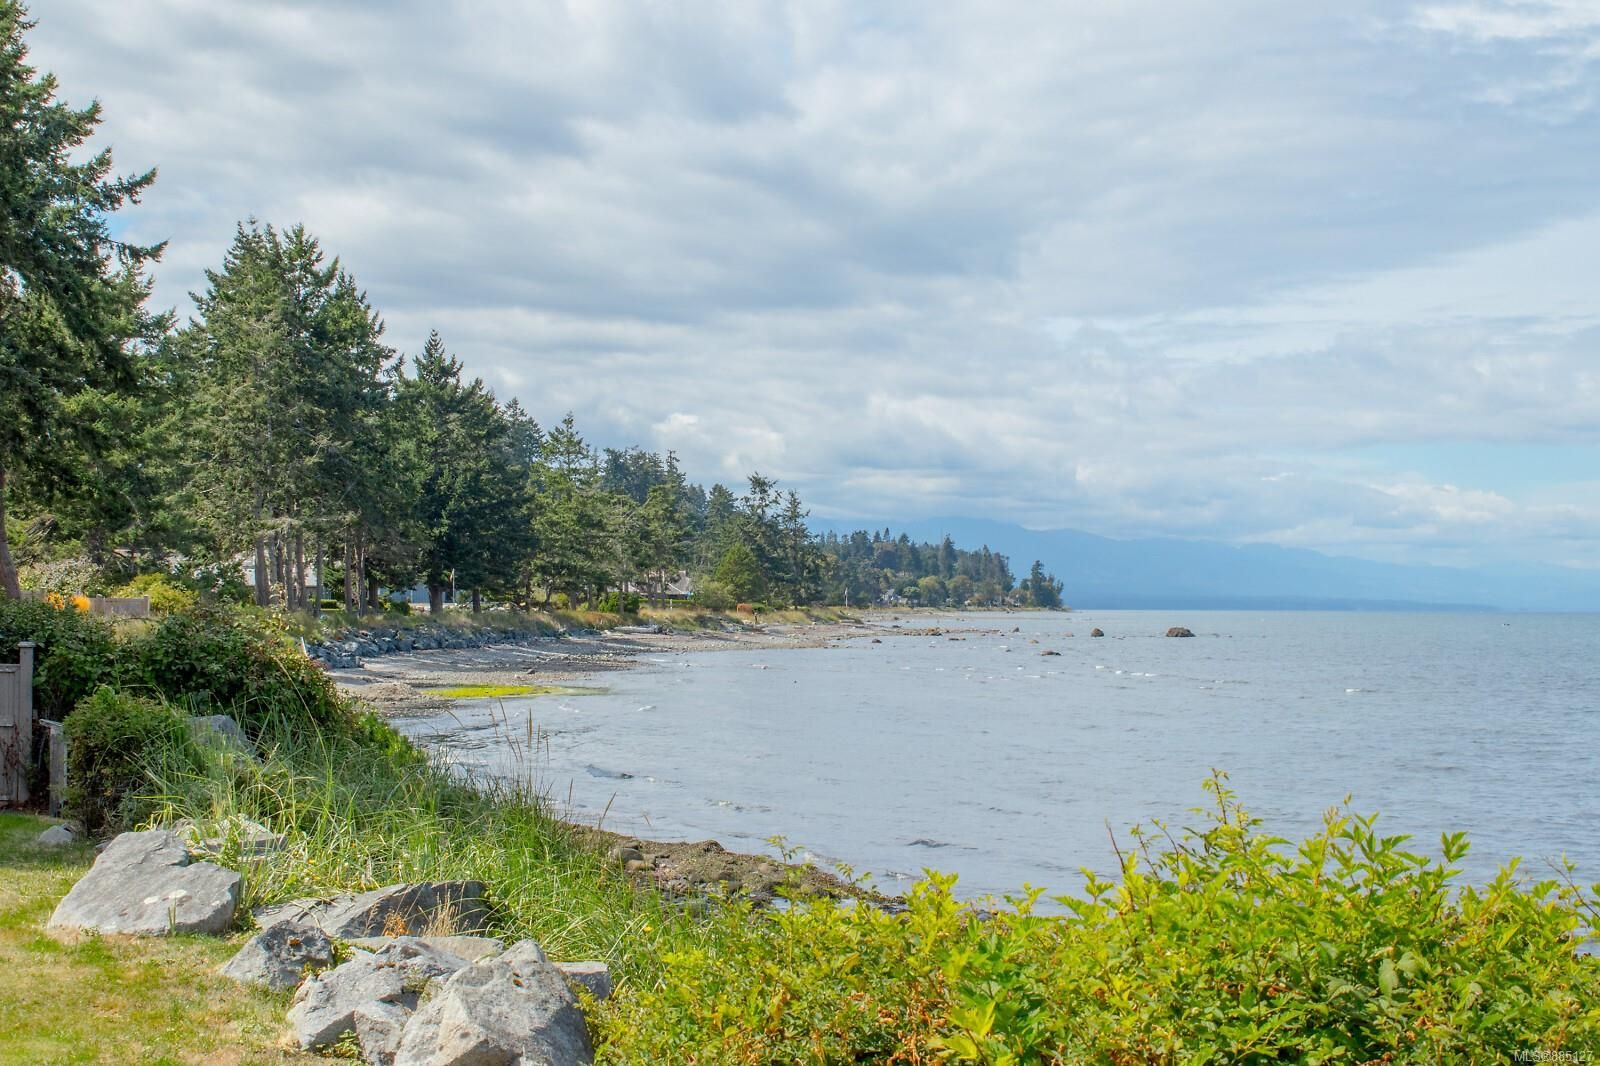 Photo 51: Photos: 26 529 Johnstone Rd in : PQ French Creek Row/Townhouse for sale (Parksville/Qualicum)  : MLS®# 885127